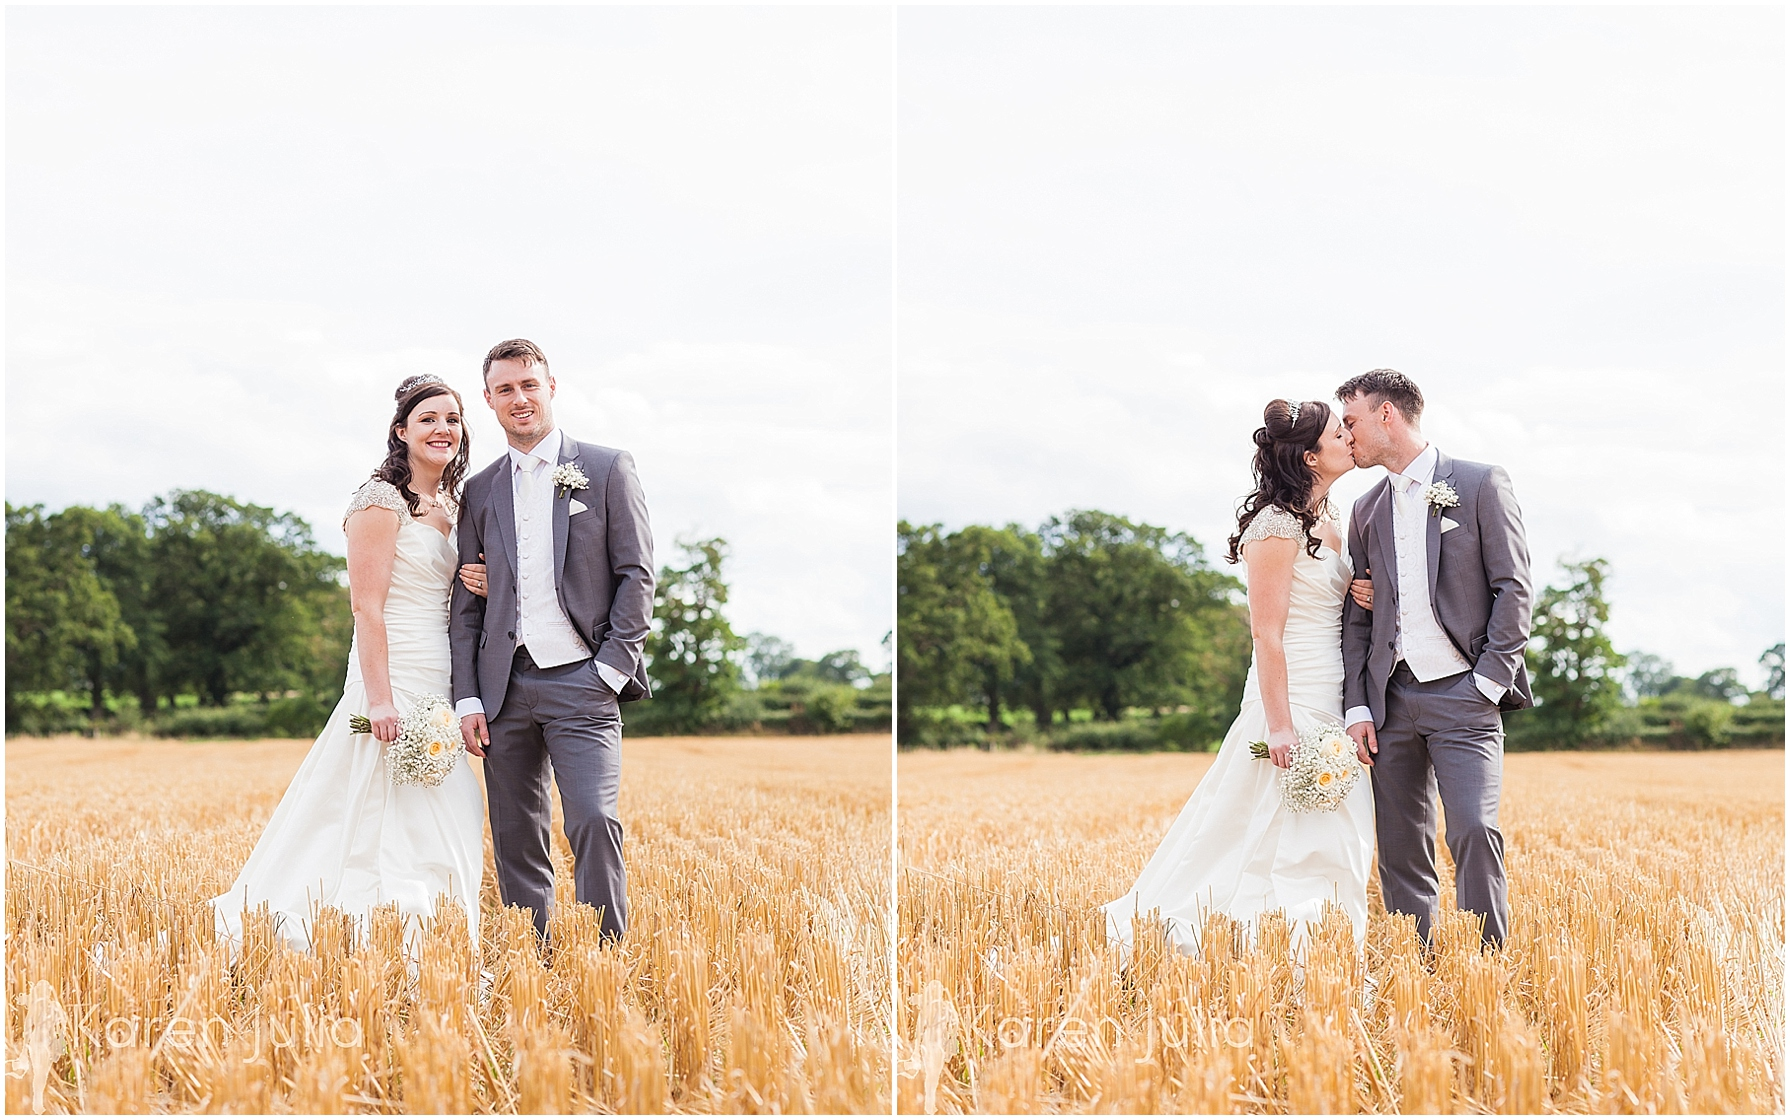 Cheshire Wedding Photography Smallwood village corn field portraits